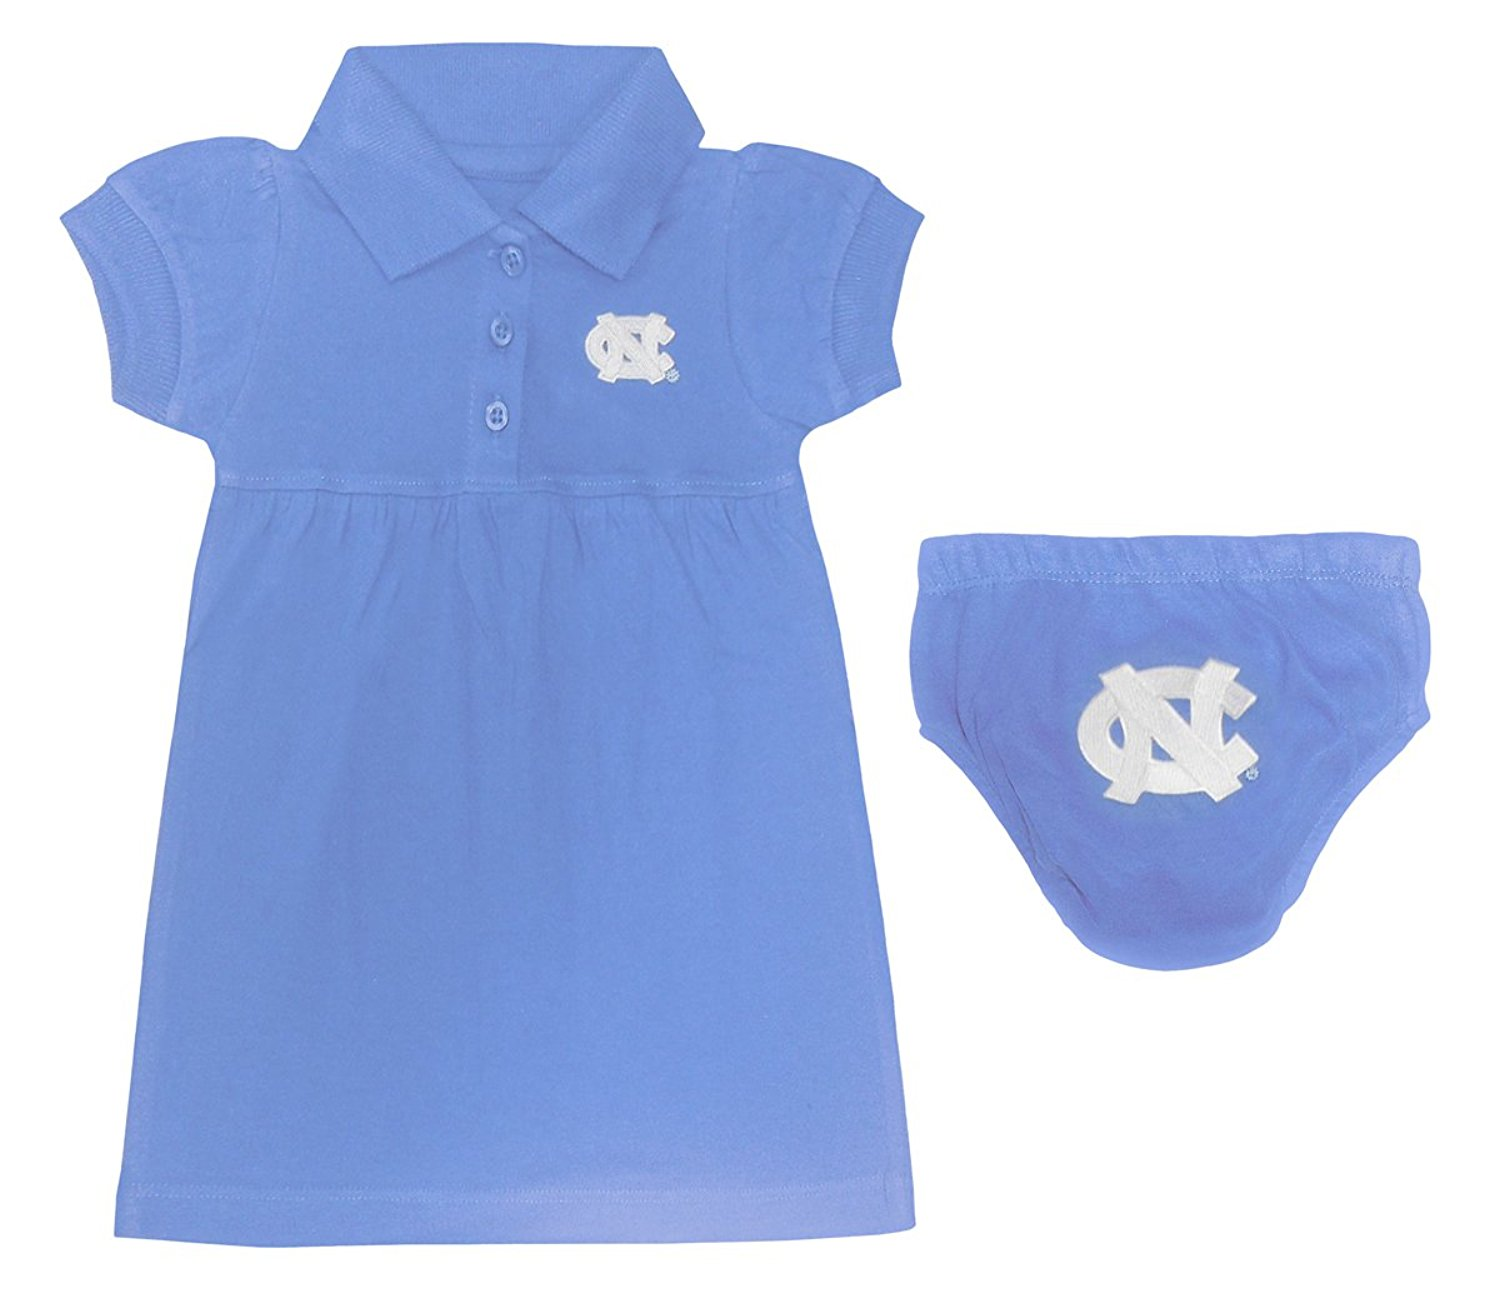 Cheap Polo Baby Dress find Polo Baby Dress deals on line at Alibaba